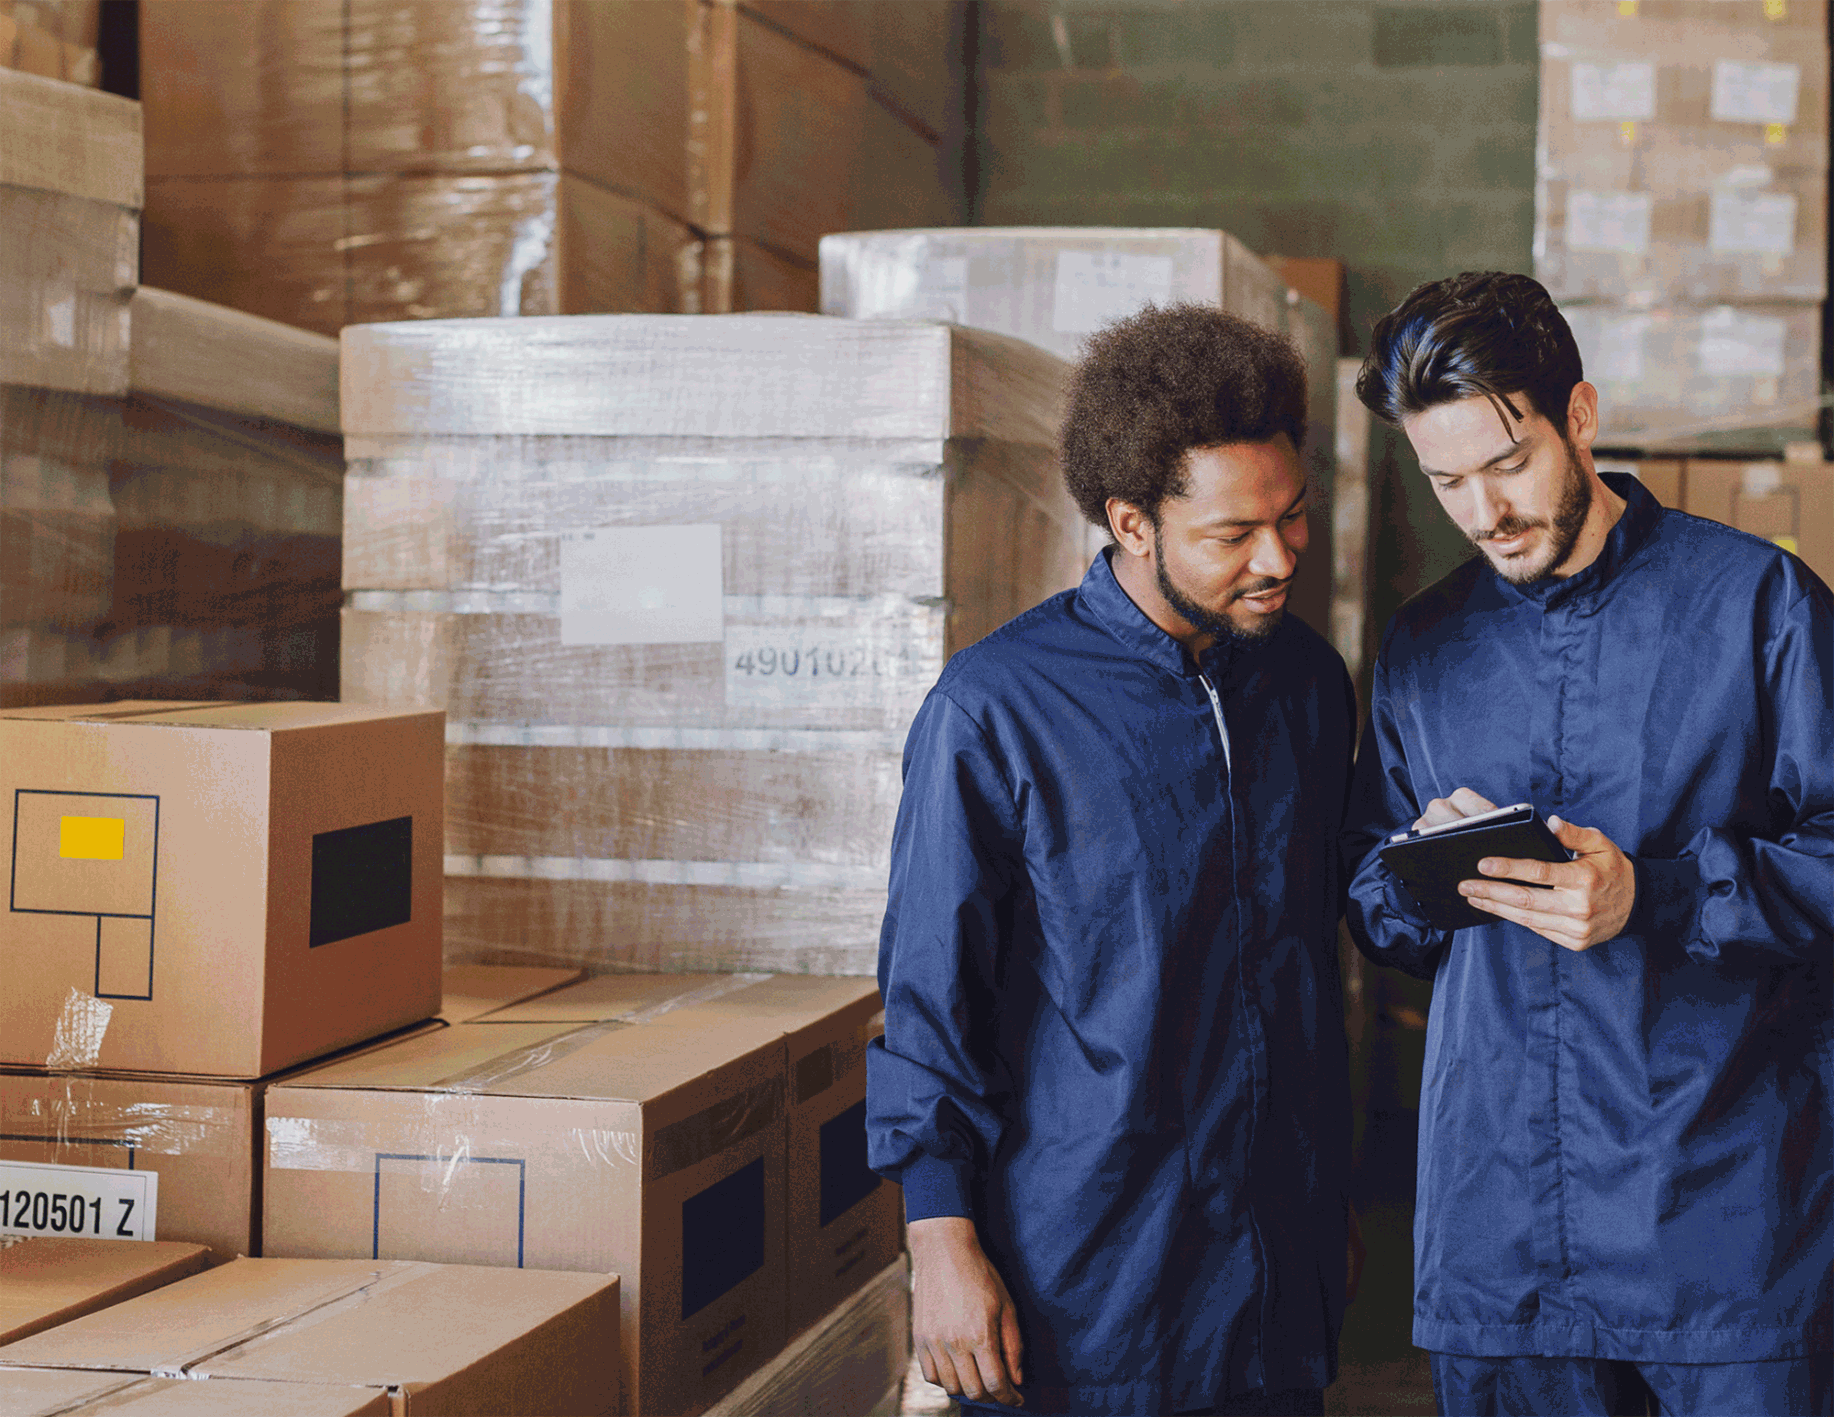 image of two individuals in a warehouse looking at ipad